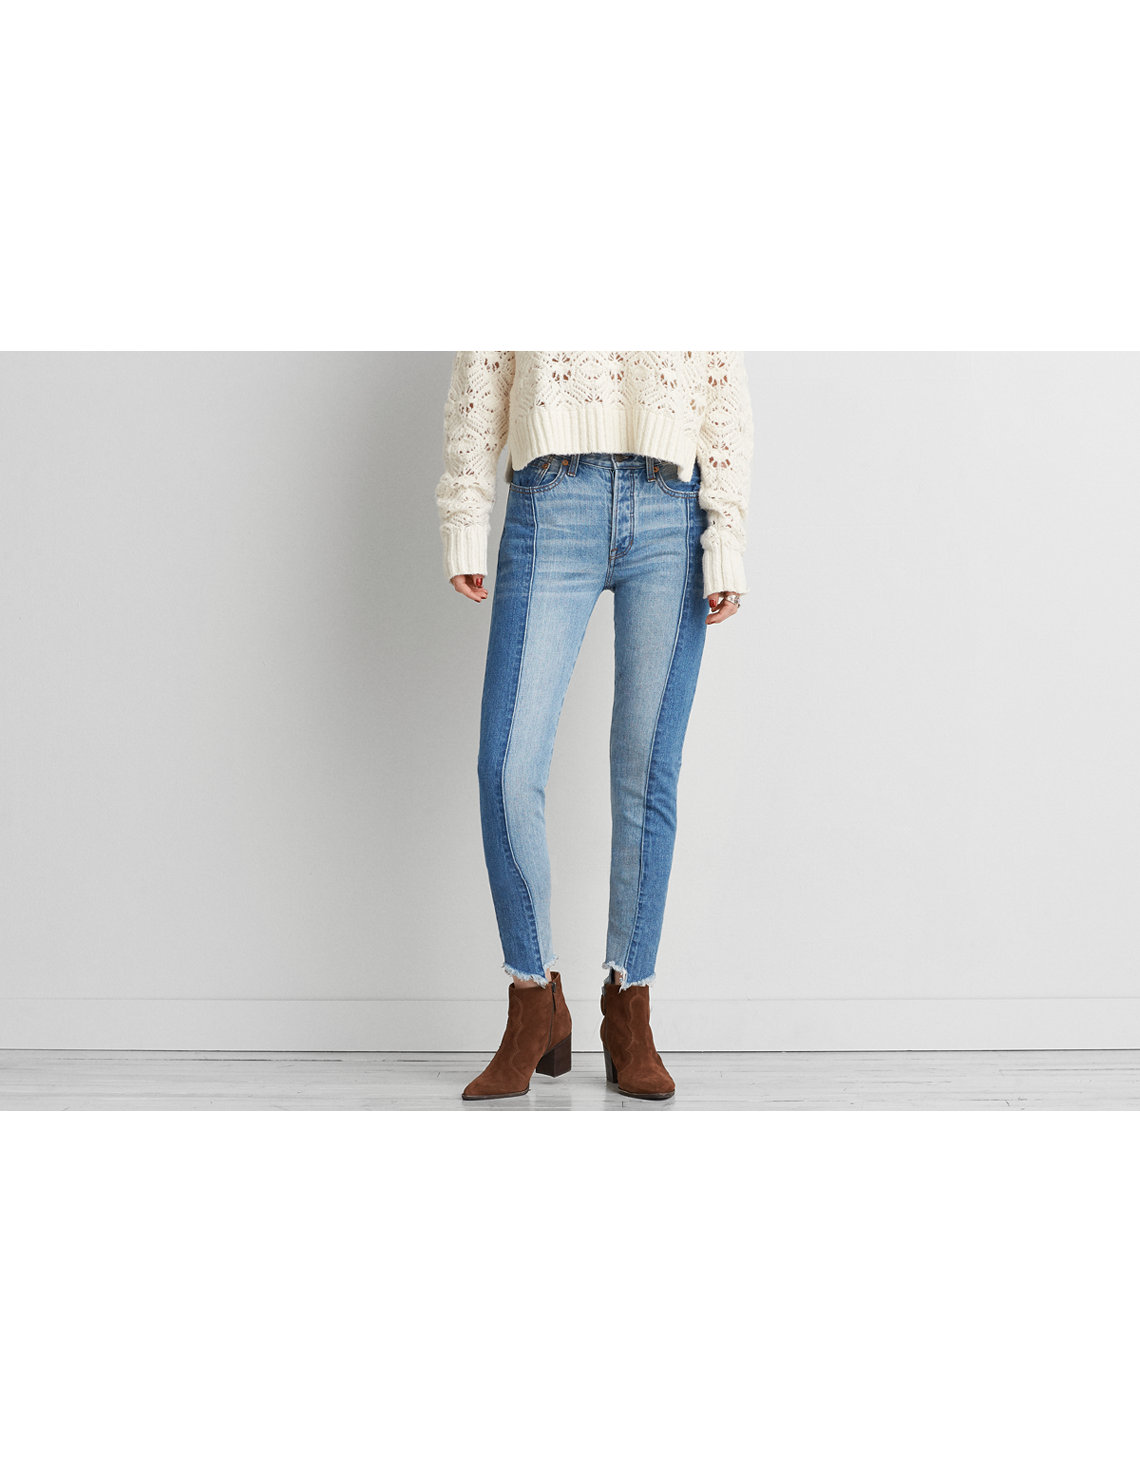 Colored Jeans | Ae.com | American Eagle Outfitters